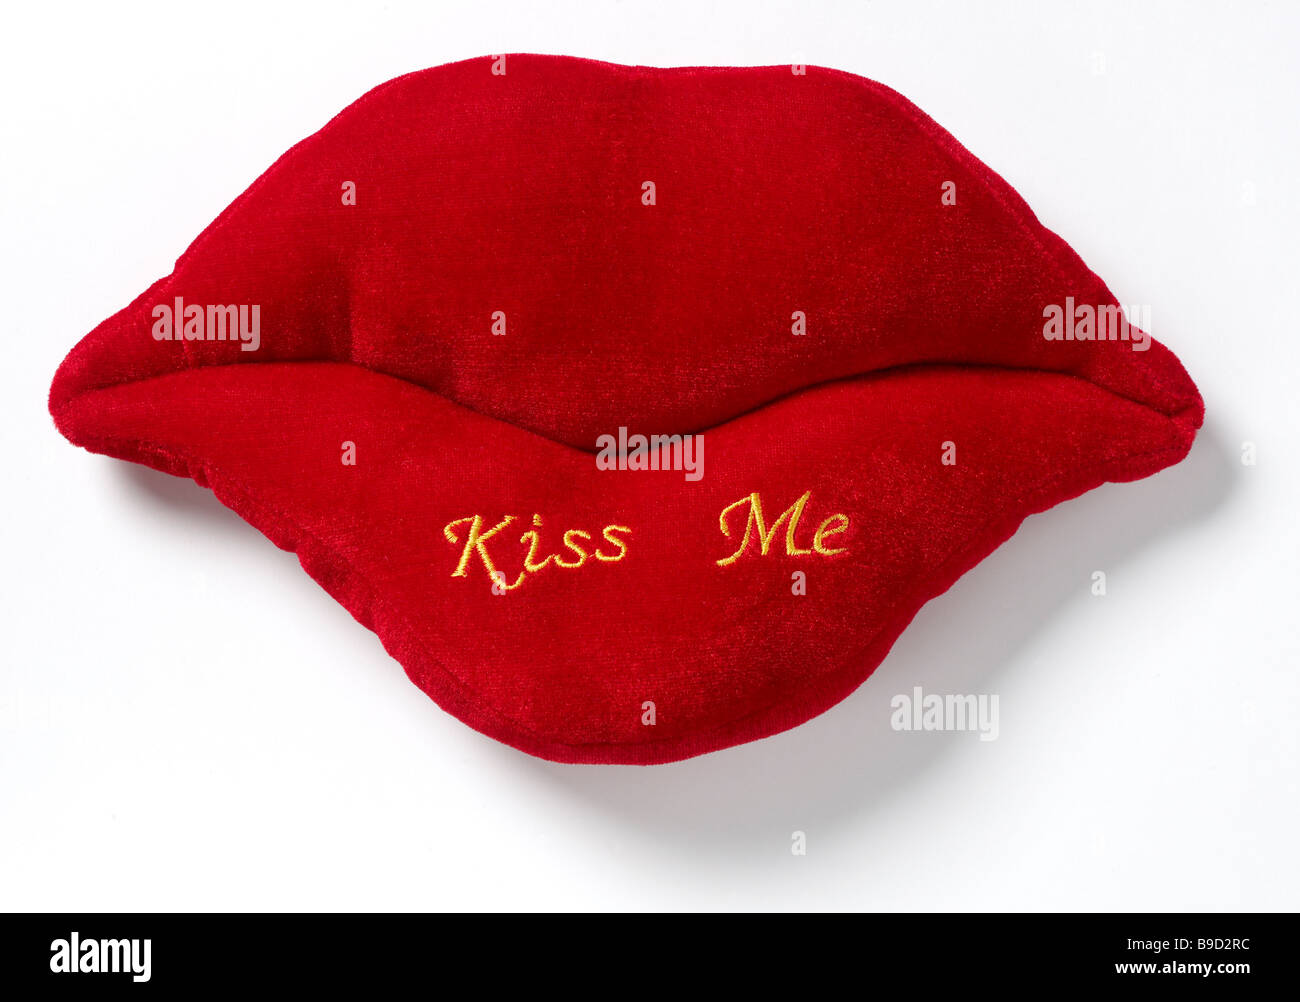 Kiss me red Lips - Stock Image